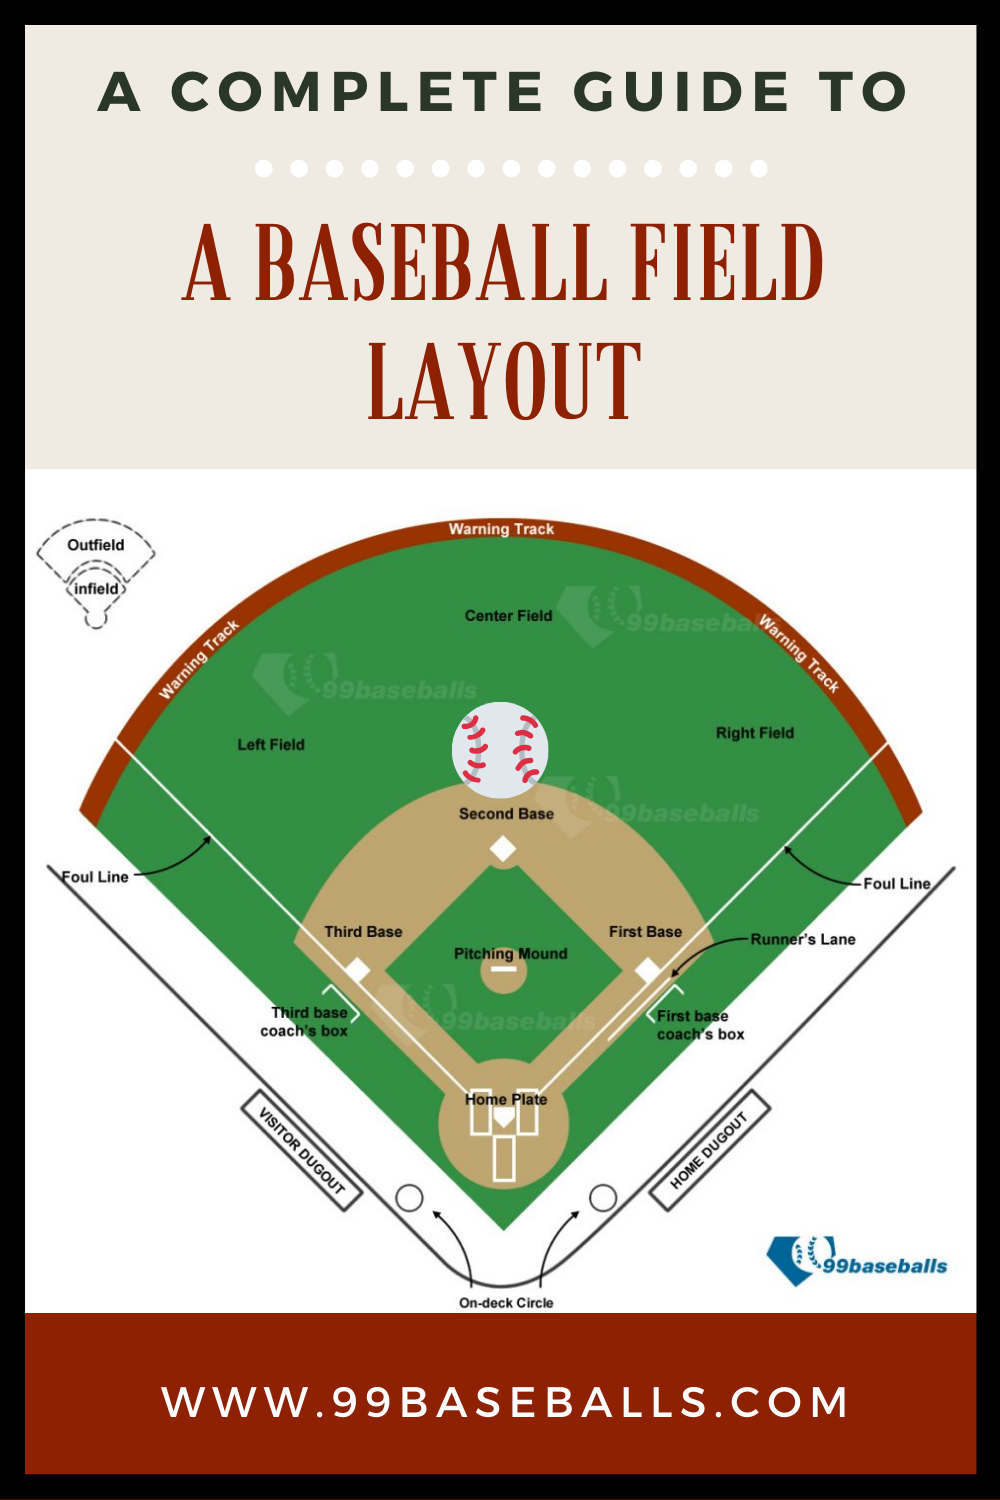 A Complete Guide To A Baseball Field Layout Baseball Field Baseball Team Mom Baseball